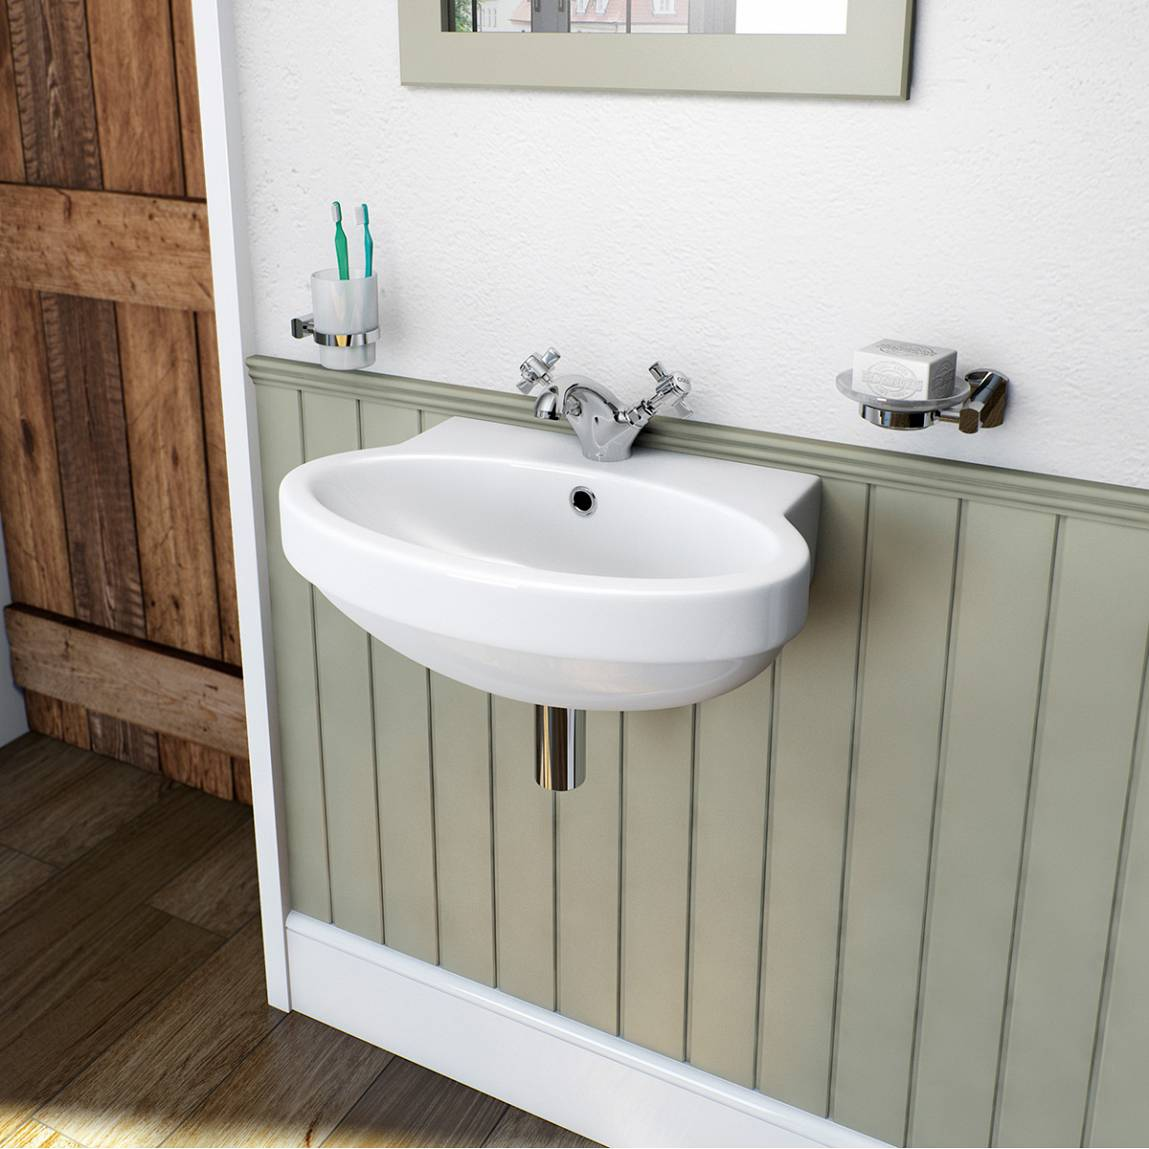 Charmant Deco Wall Mounted Basin